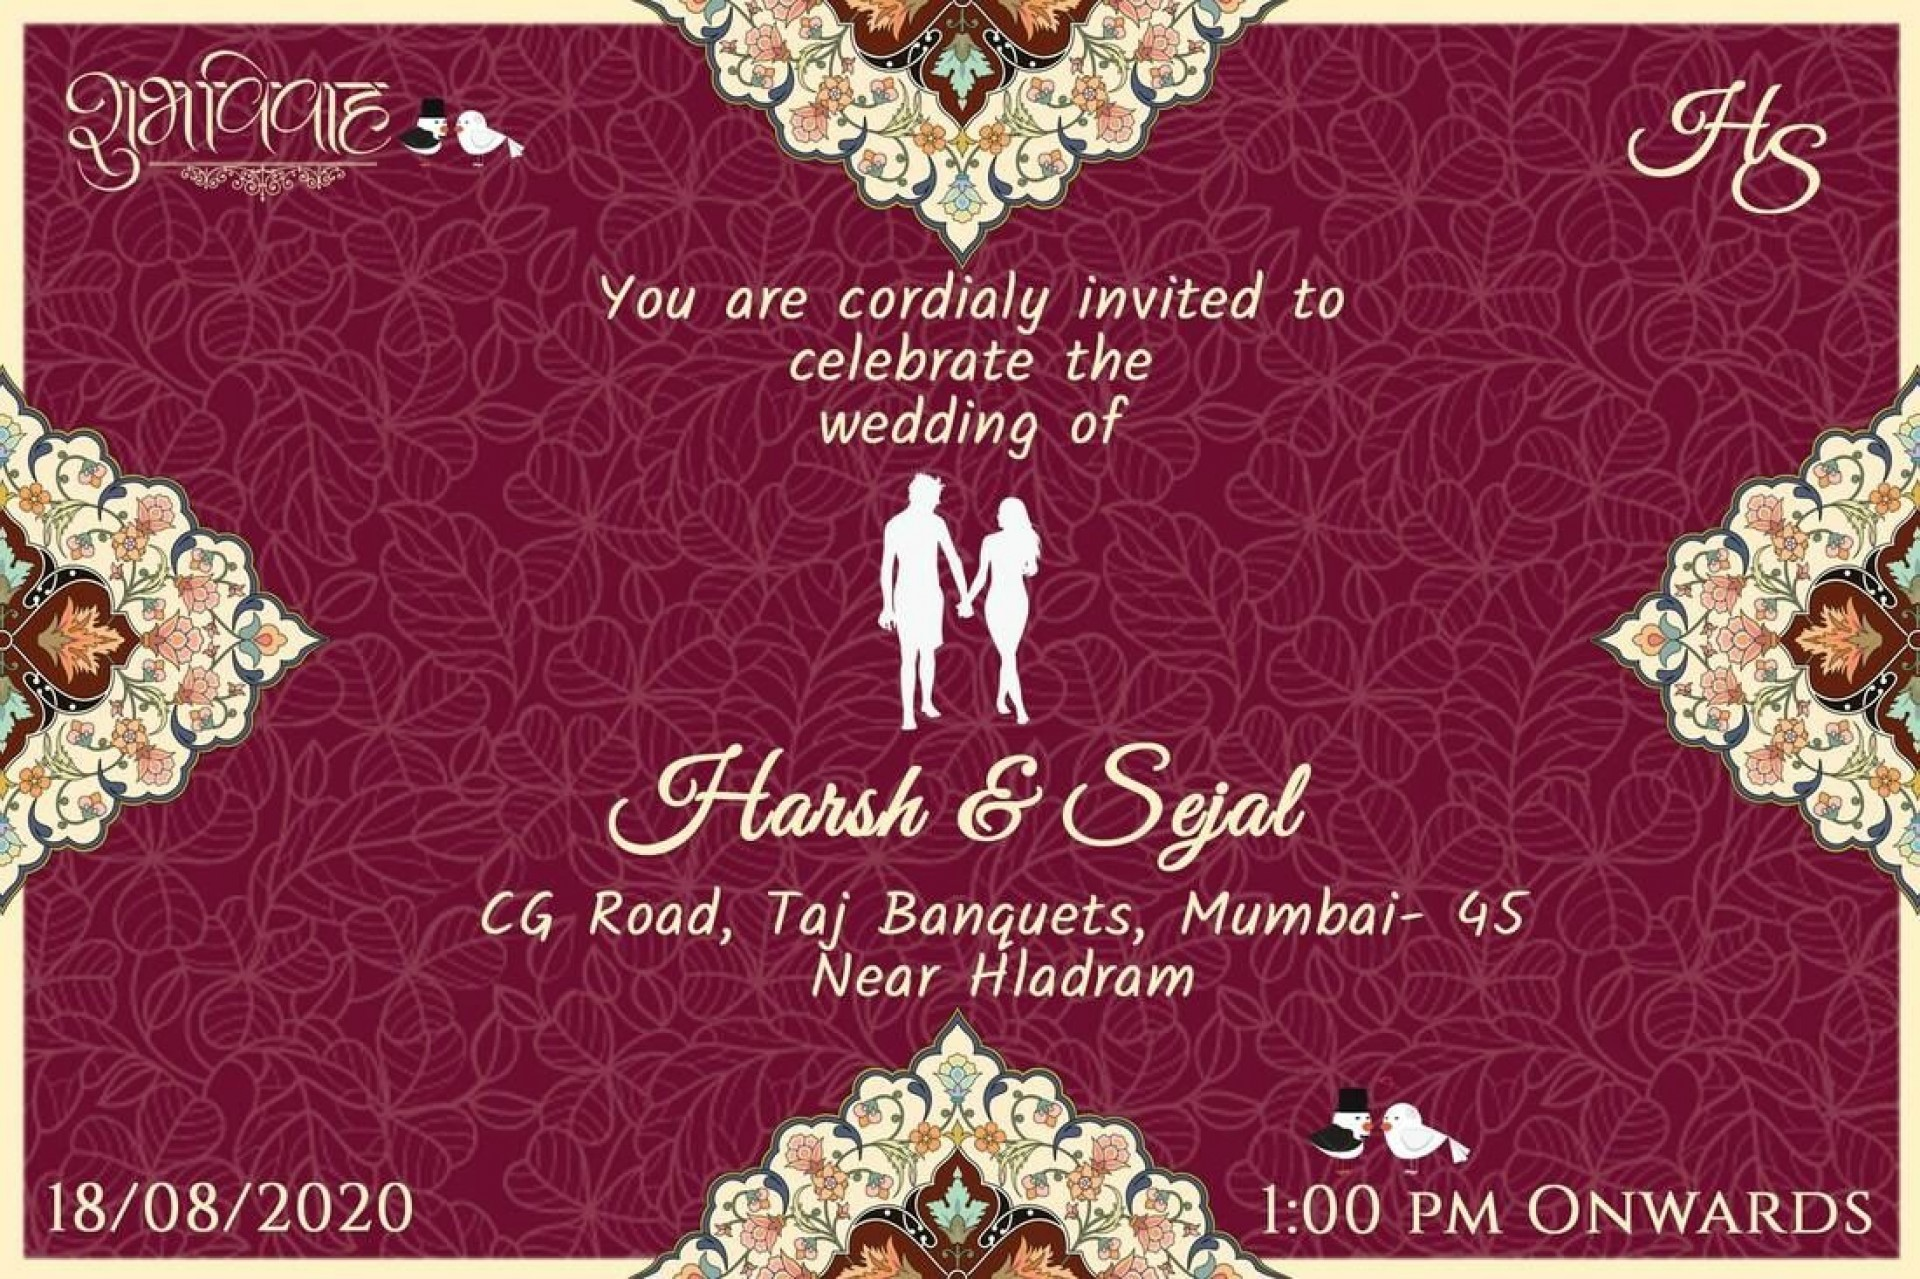 008 Staggering Free Online Indian Wedding Invitation Card Template Picture  Templates1920